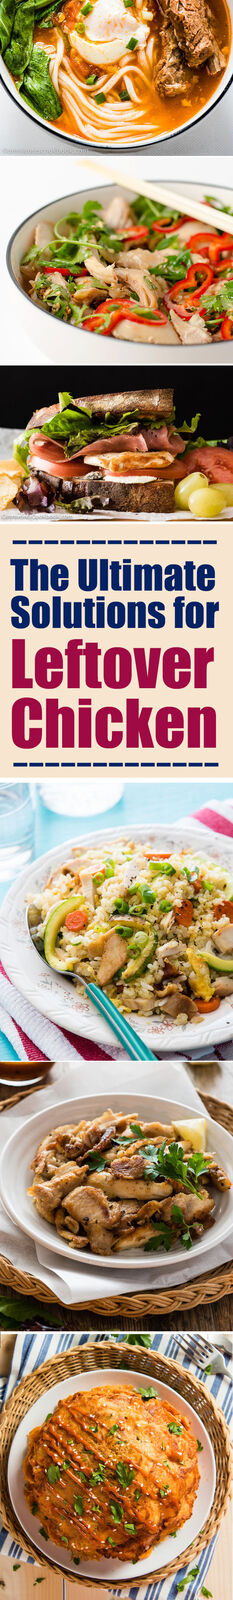 The Ultimate Solutions for Leftover Chicken | omnivorescookbook.com